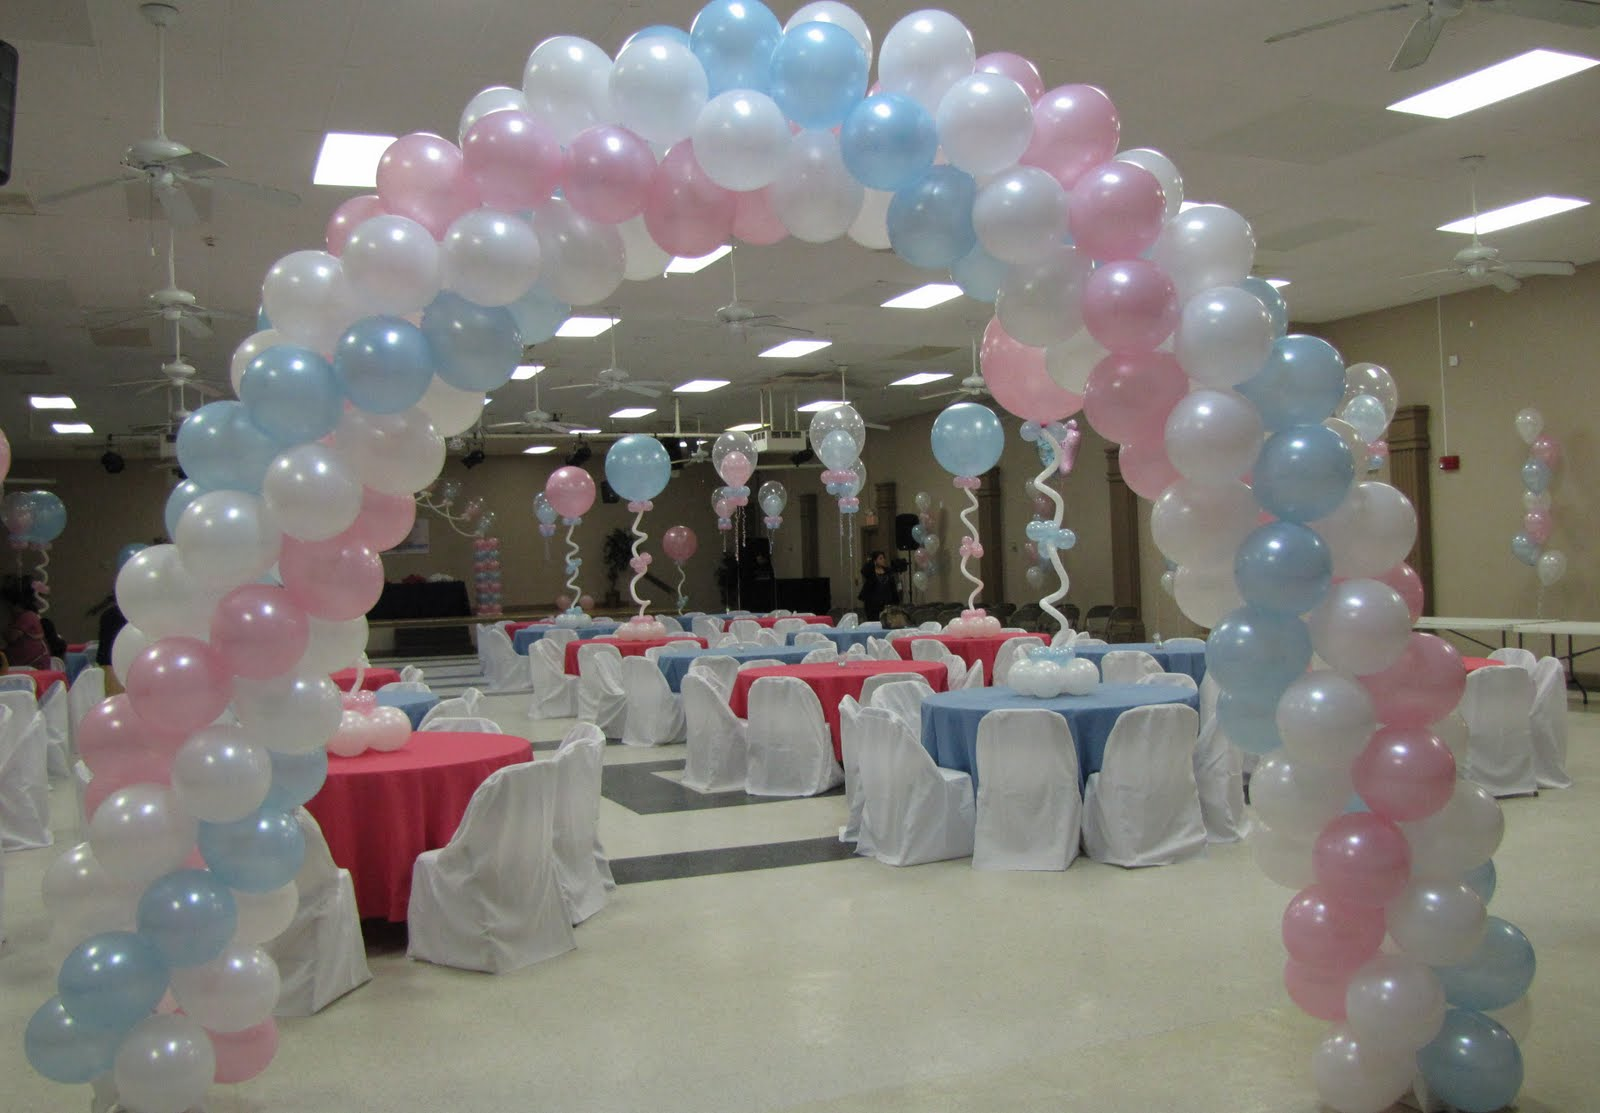 Balloons decorations for baby shower party favors ideas for Baby shower modern decoration